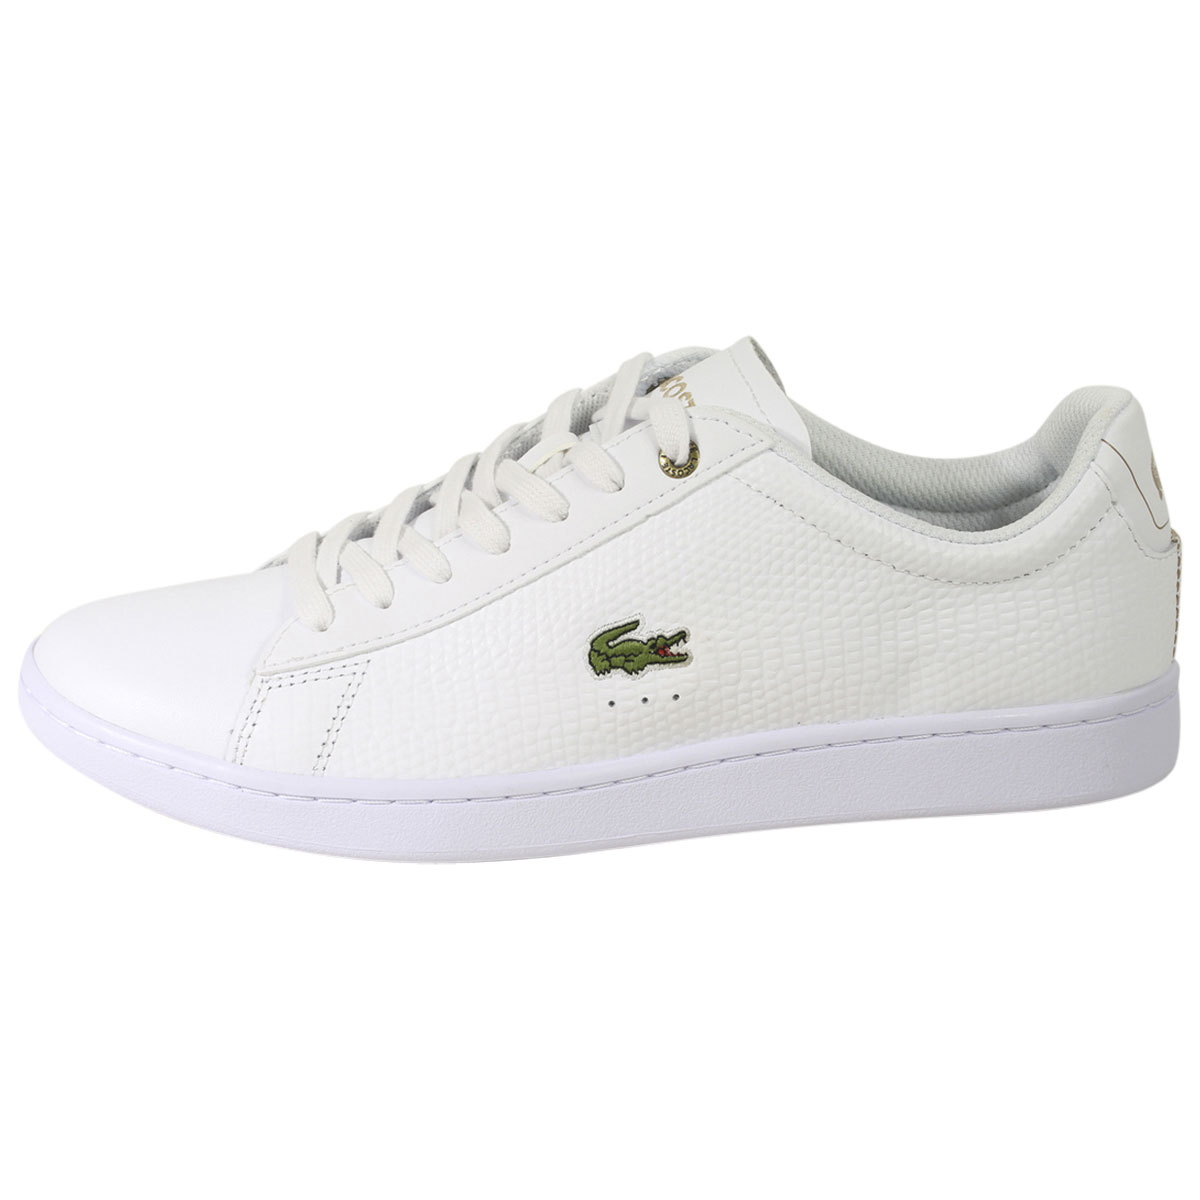 914b9550283a Lacoste Men s Carnaby-EVO-118 Trainers Sneakers Shoes